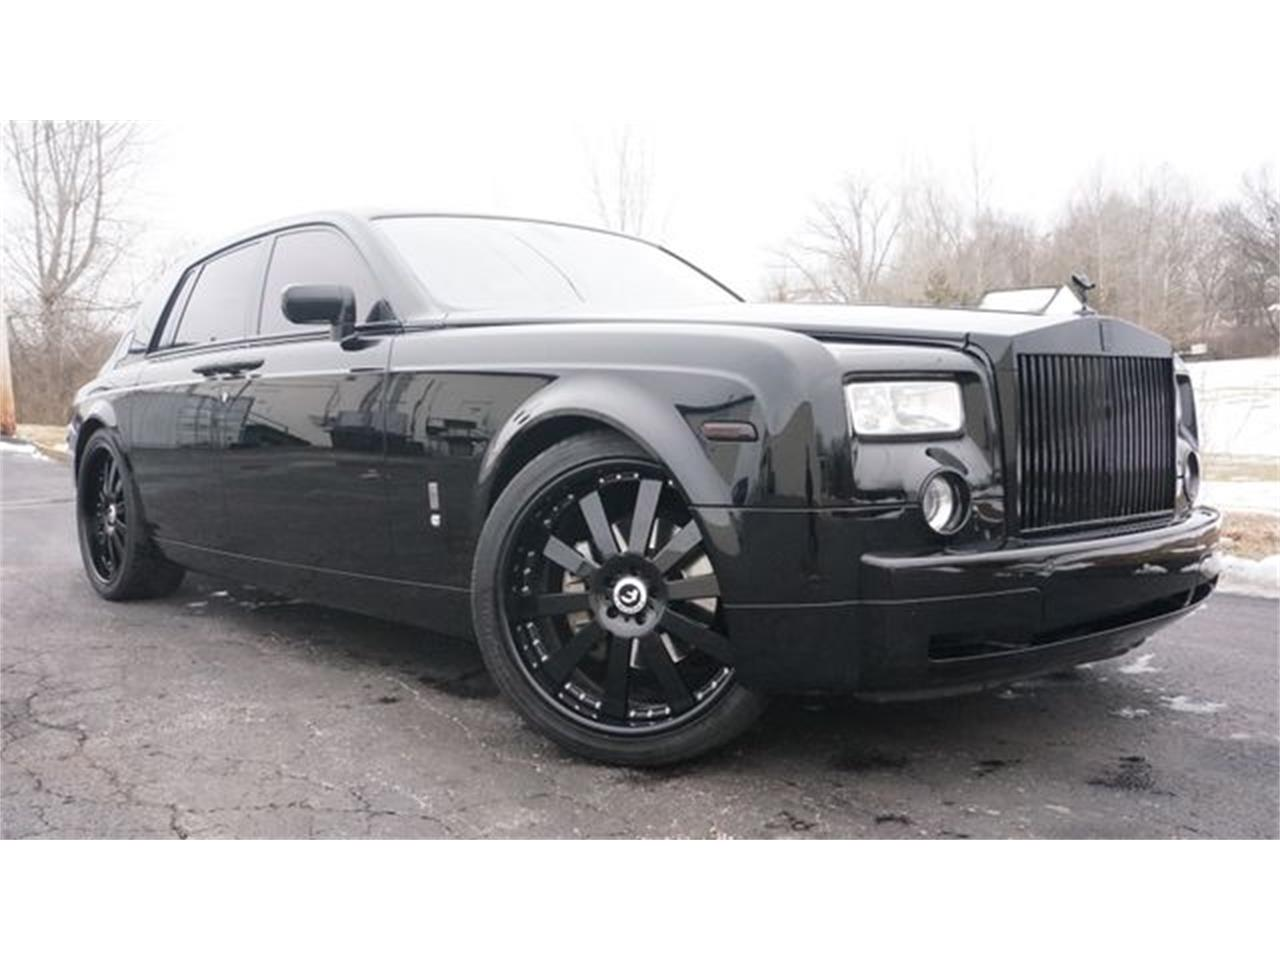 2006 Rolls-Royce Phantom for sale in Valley Park, MO – photo 18